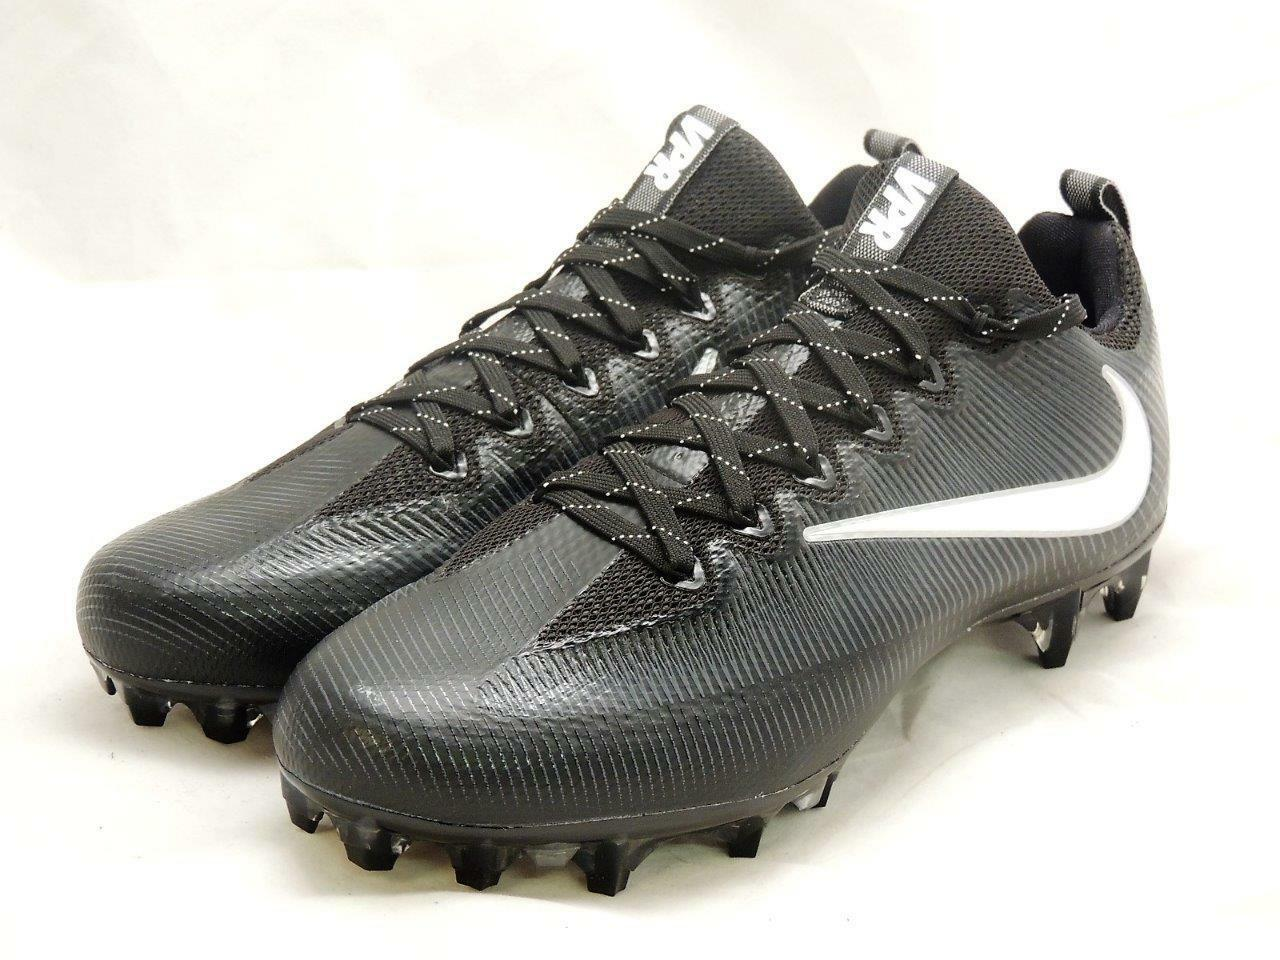 reputable site ded4b 38541 Nike Vapore Intoccabile Intoccabile Intoccabile Football tte 844816-010 Nero  Argento Uomini  10 295bab